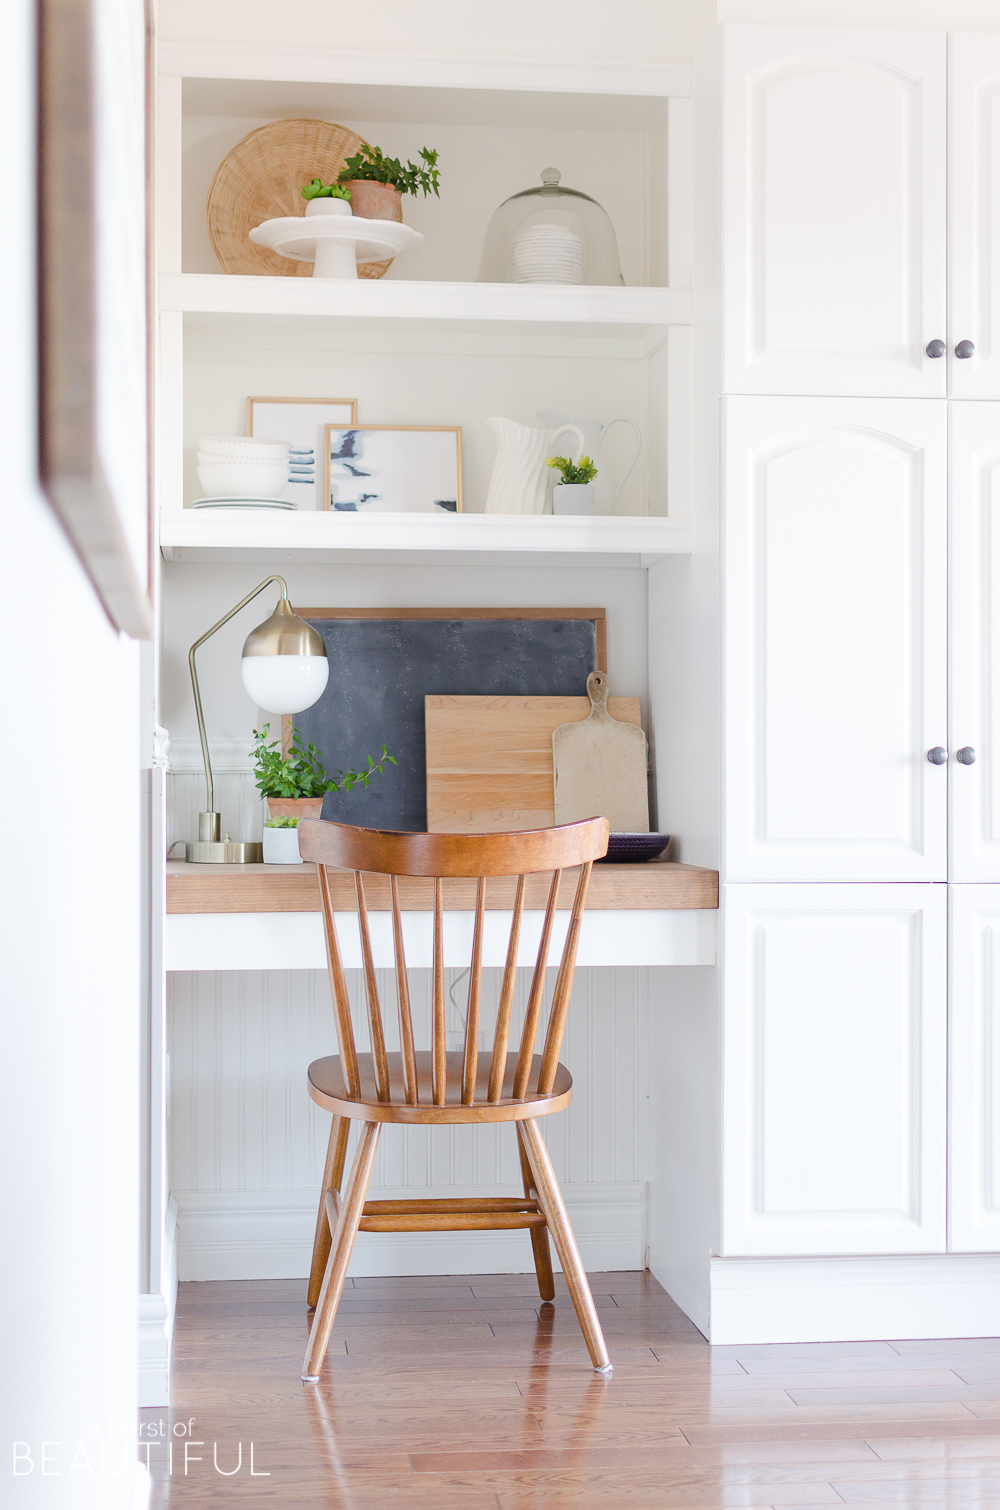 Kitchen Nook | Spring Decorating Ideas for the Kitchen - A Burst of on tiny kitchen pantry, tiny kitchen island, bedroom reading nook, built in nook, tiny kitchen garden, living room nook, tiny kitchen corner, tiny living room, tiny office, tiny kitchen appliances, tiny kitchen table, tiny kitchen ideas,